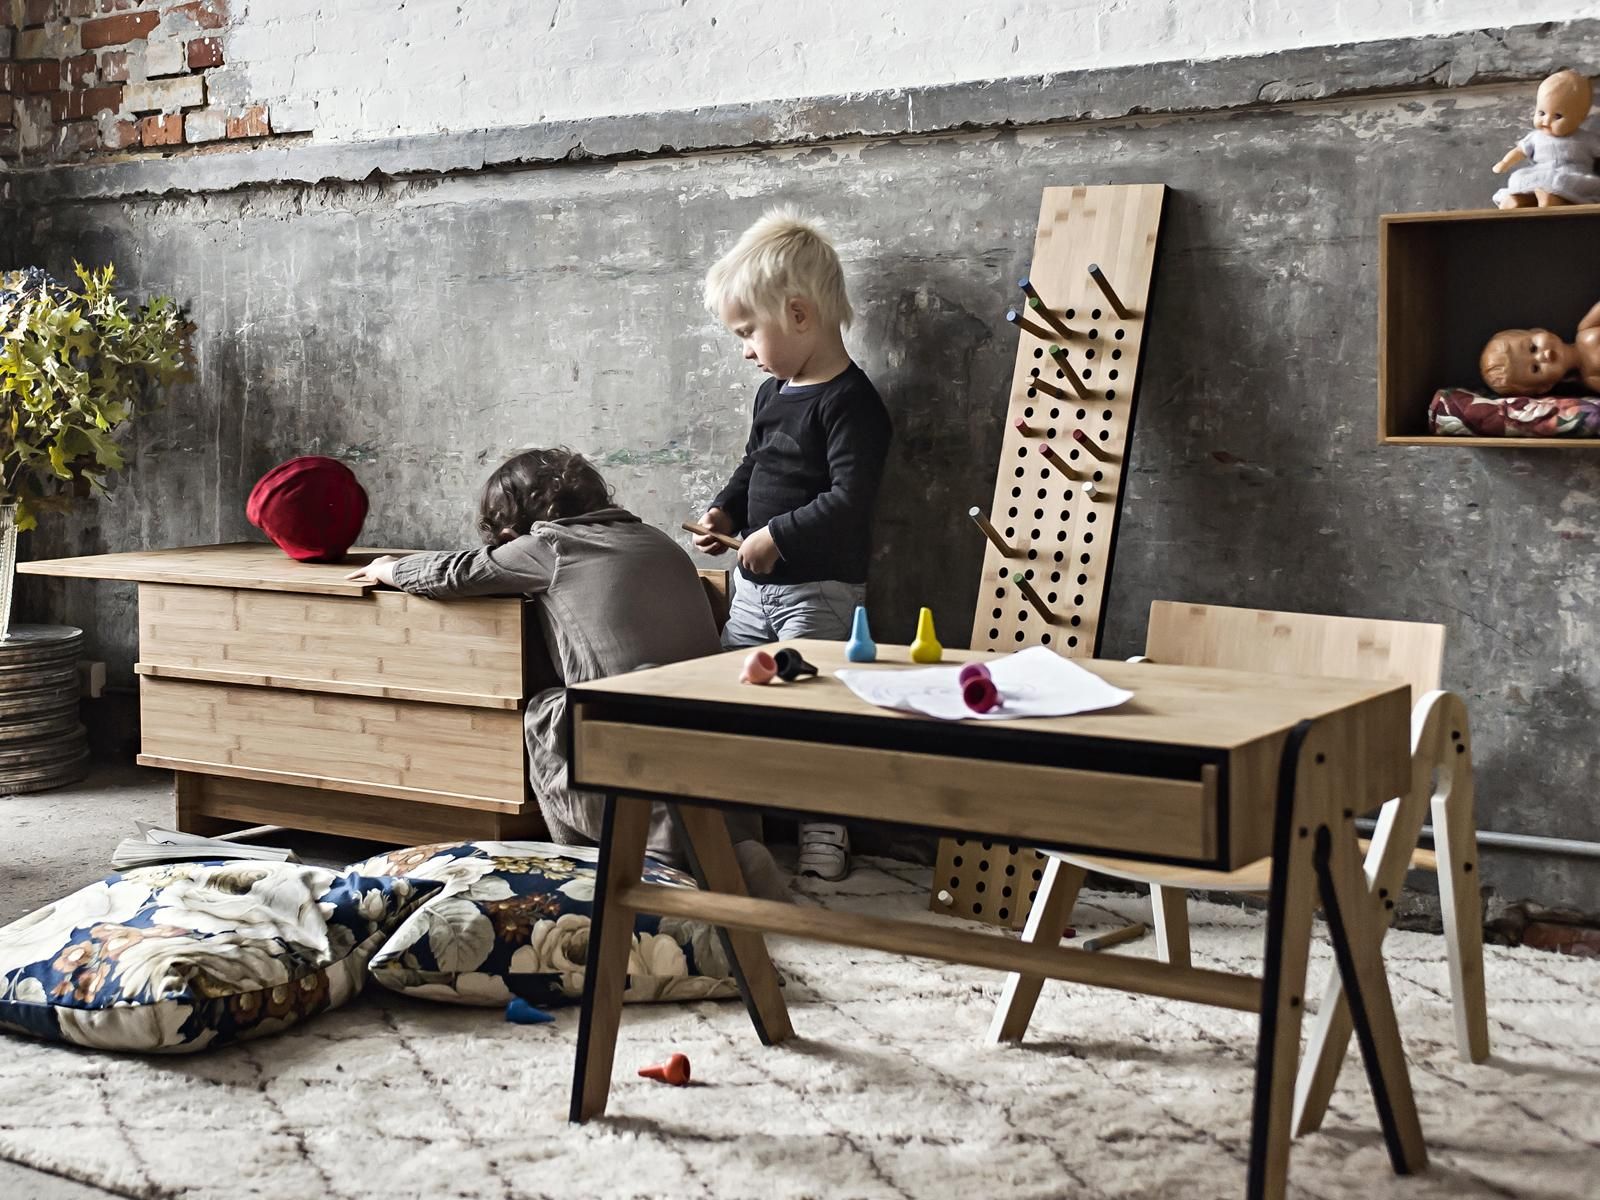 SCOREBOARD im Kinderzimmer #garderobe #hakenleiste ©We Do Wood